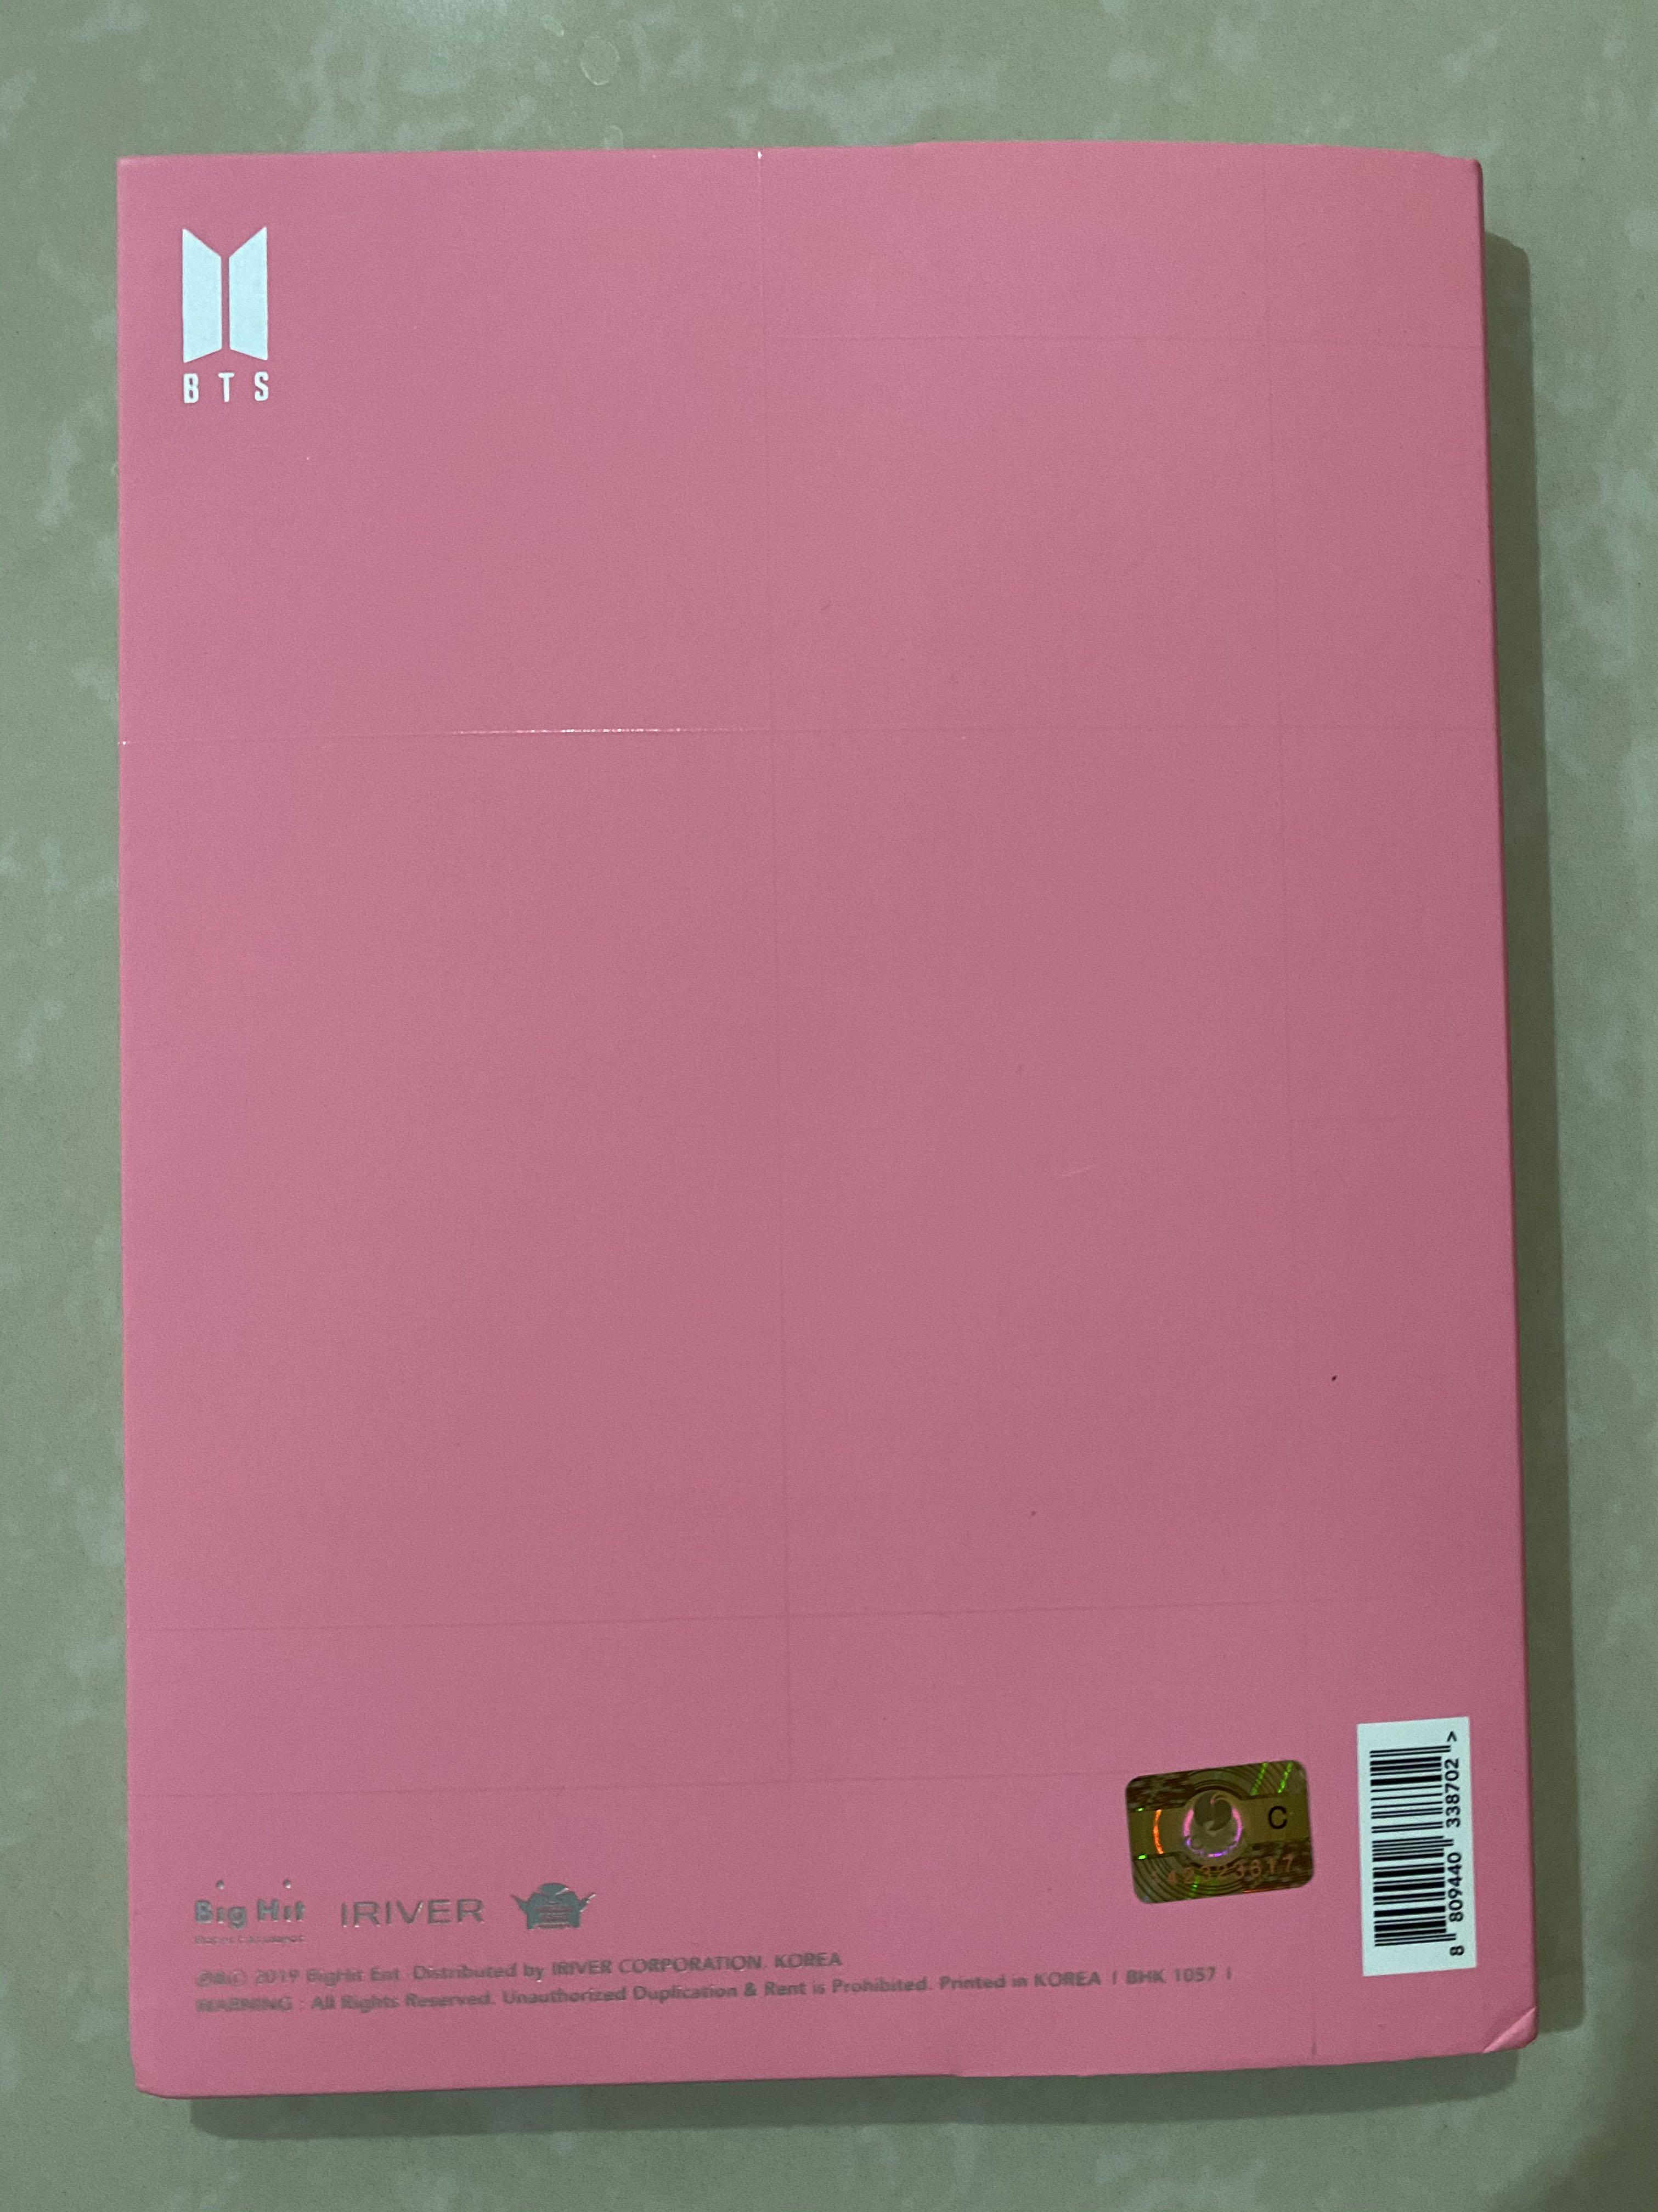 #BTS MOTS: Persona Ver 3 Album (Unsealed / Without photocard)